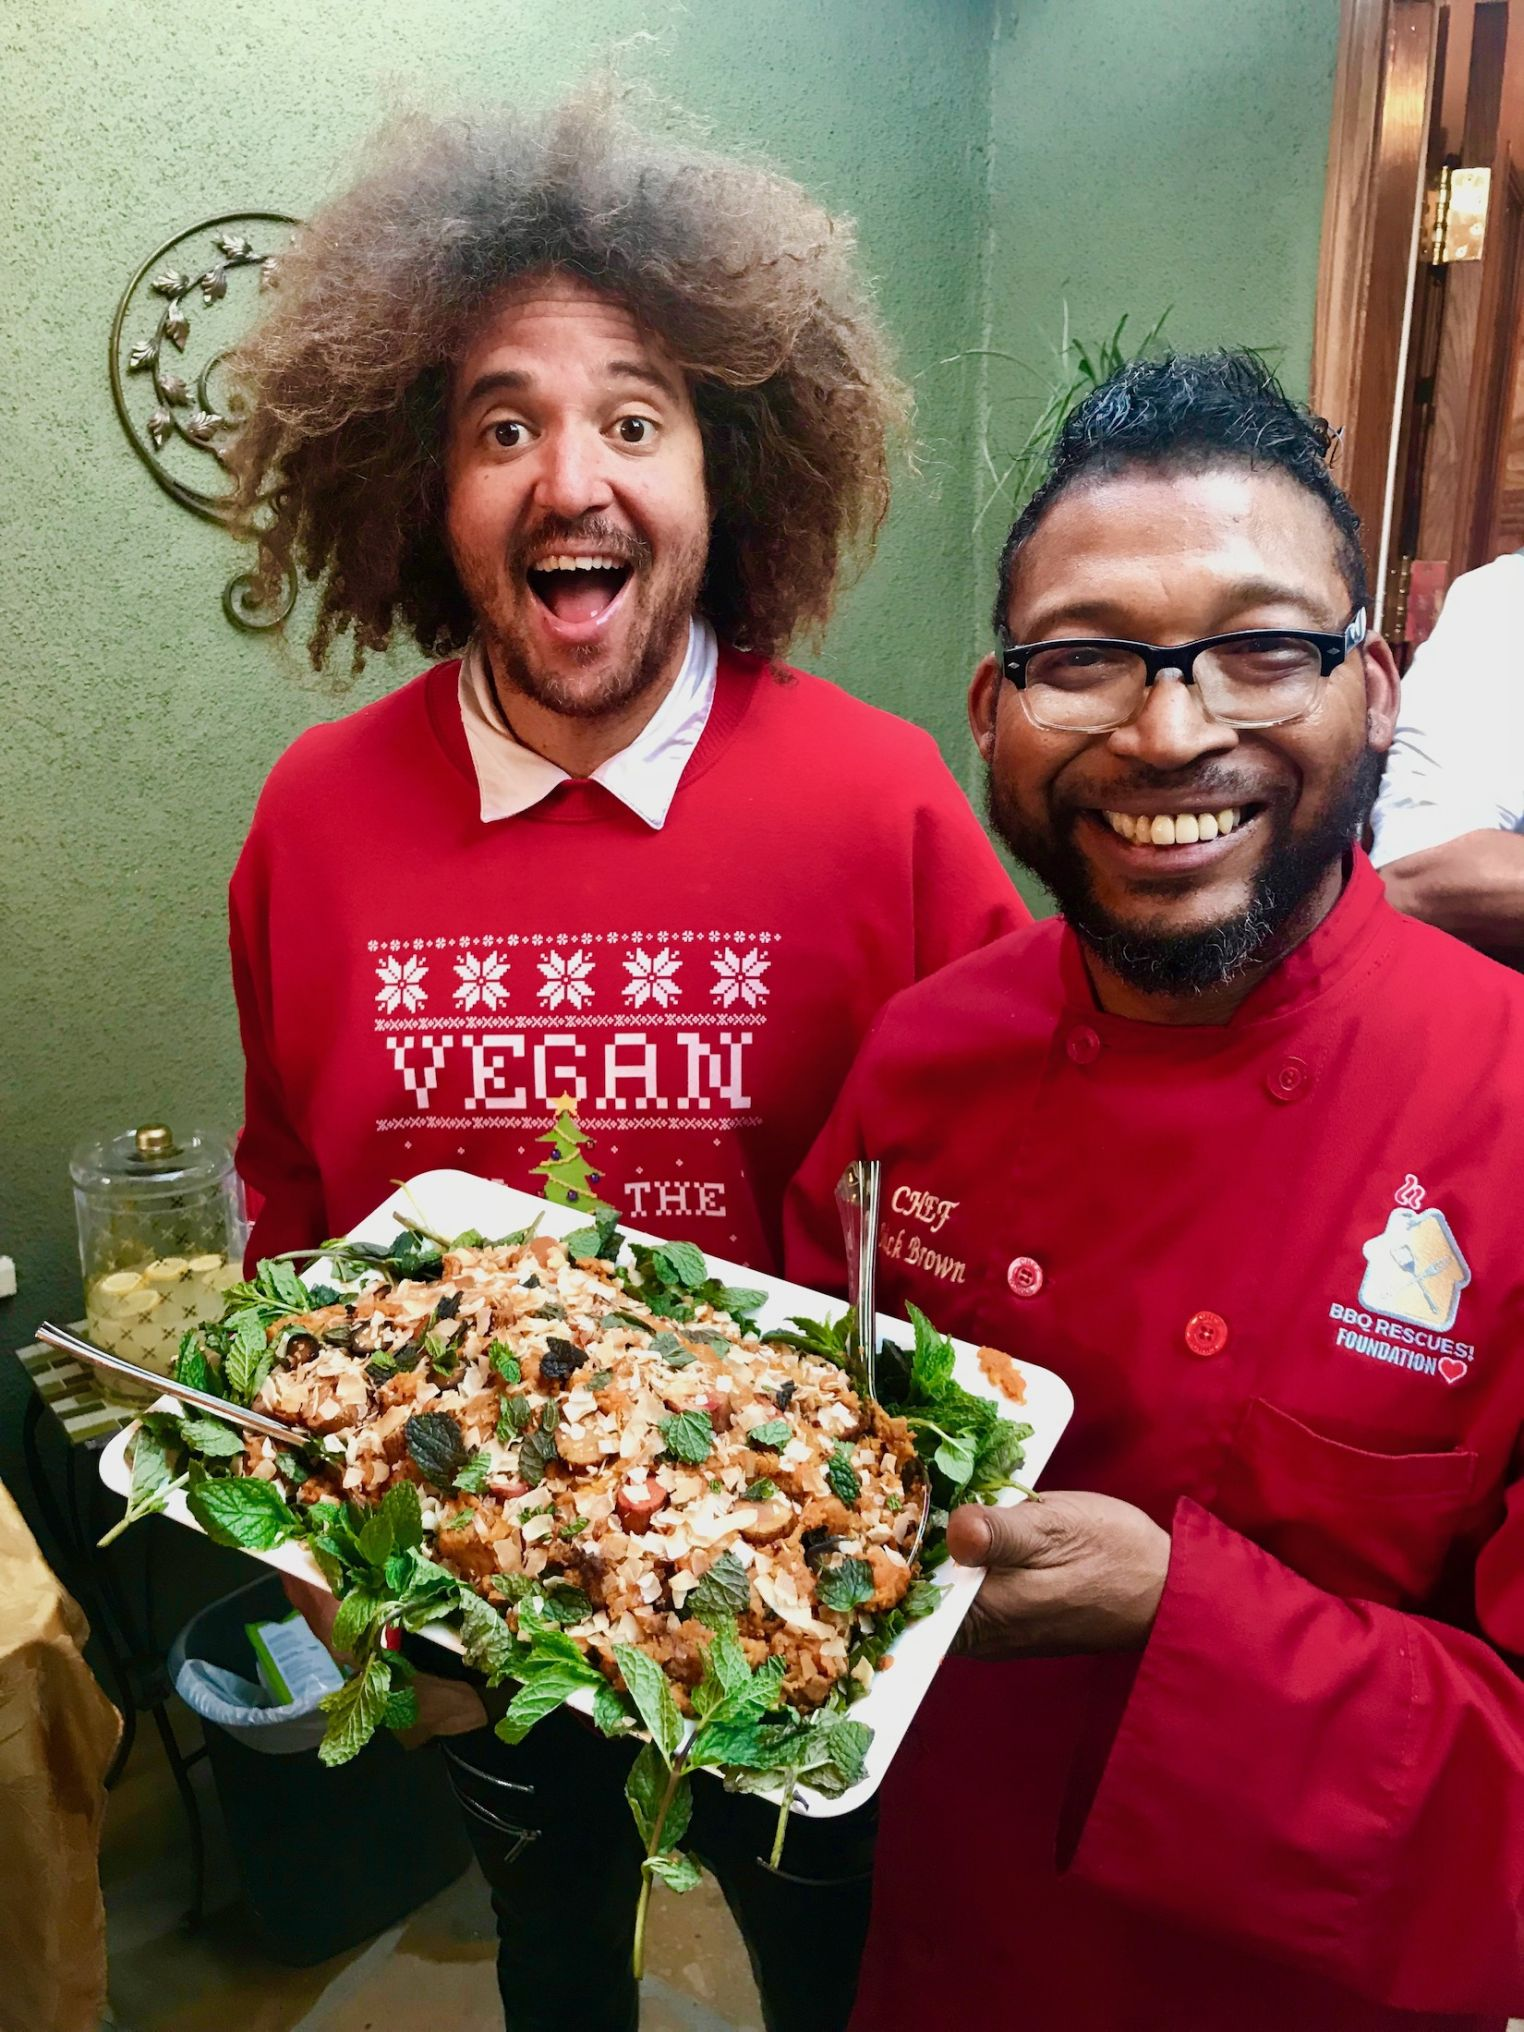 Chef Mick doing Vegan Thanksgiving with Redfoo of LMFAO Party Rock fame